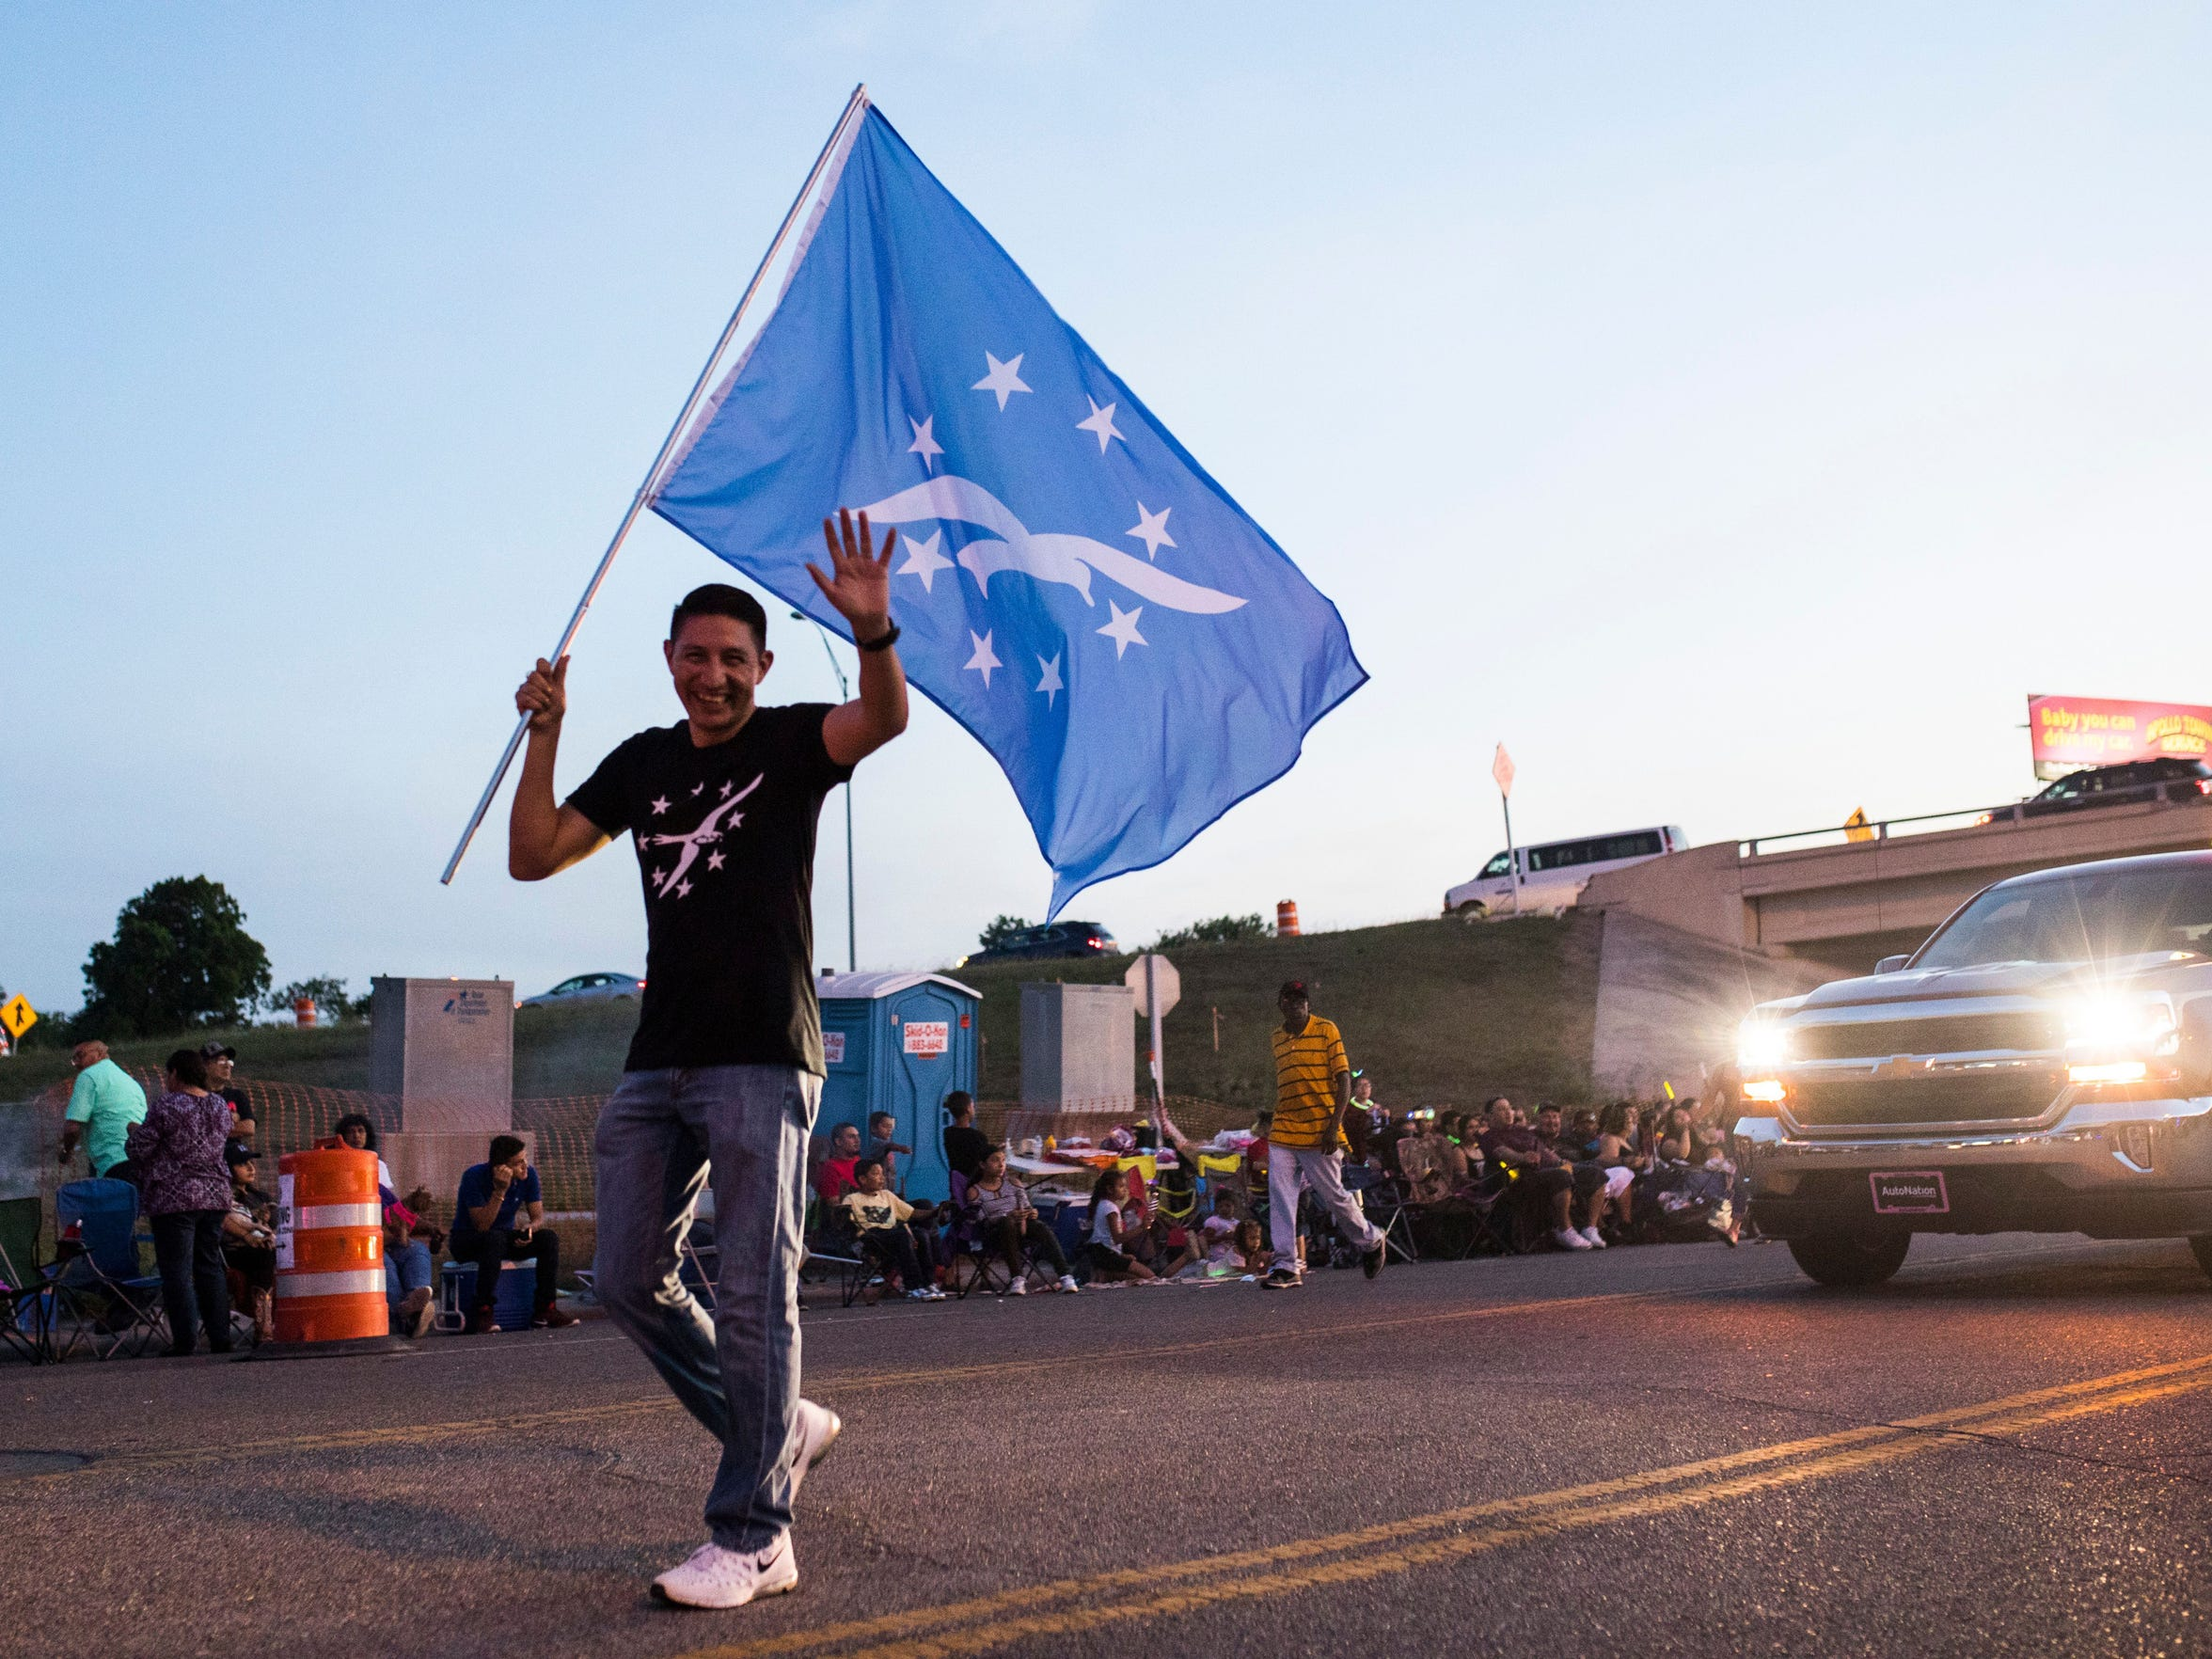 District 2 City Councilman Ben Molina waves the Corpus Christi flag while marching in the 2018 Buc Days Illuminated Night Parade on Saturday, May 5, 2018, on Leopard Street in downtown Corpus Christi.